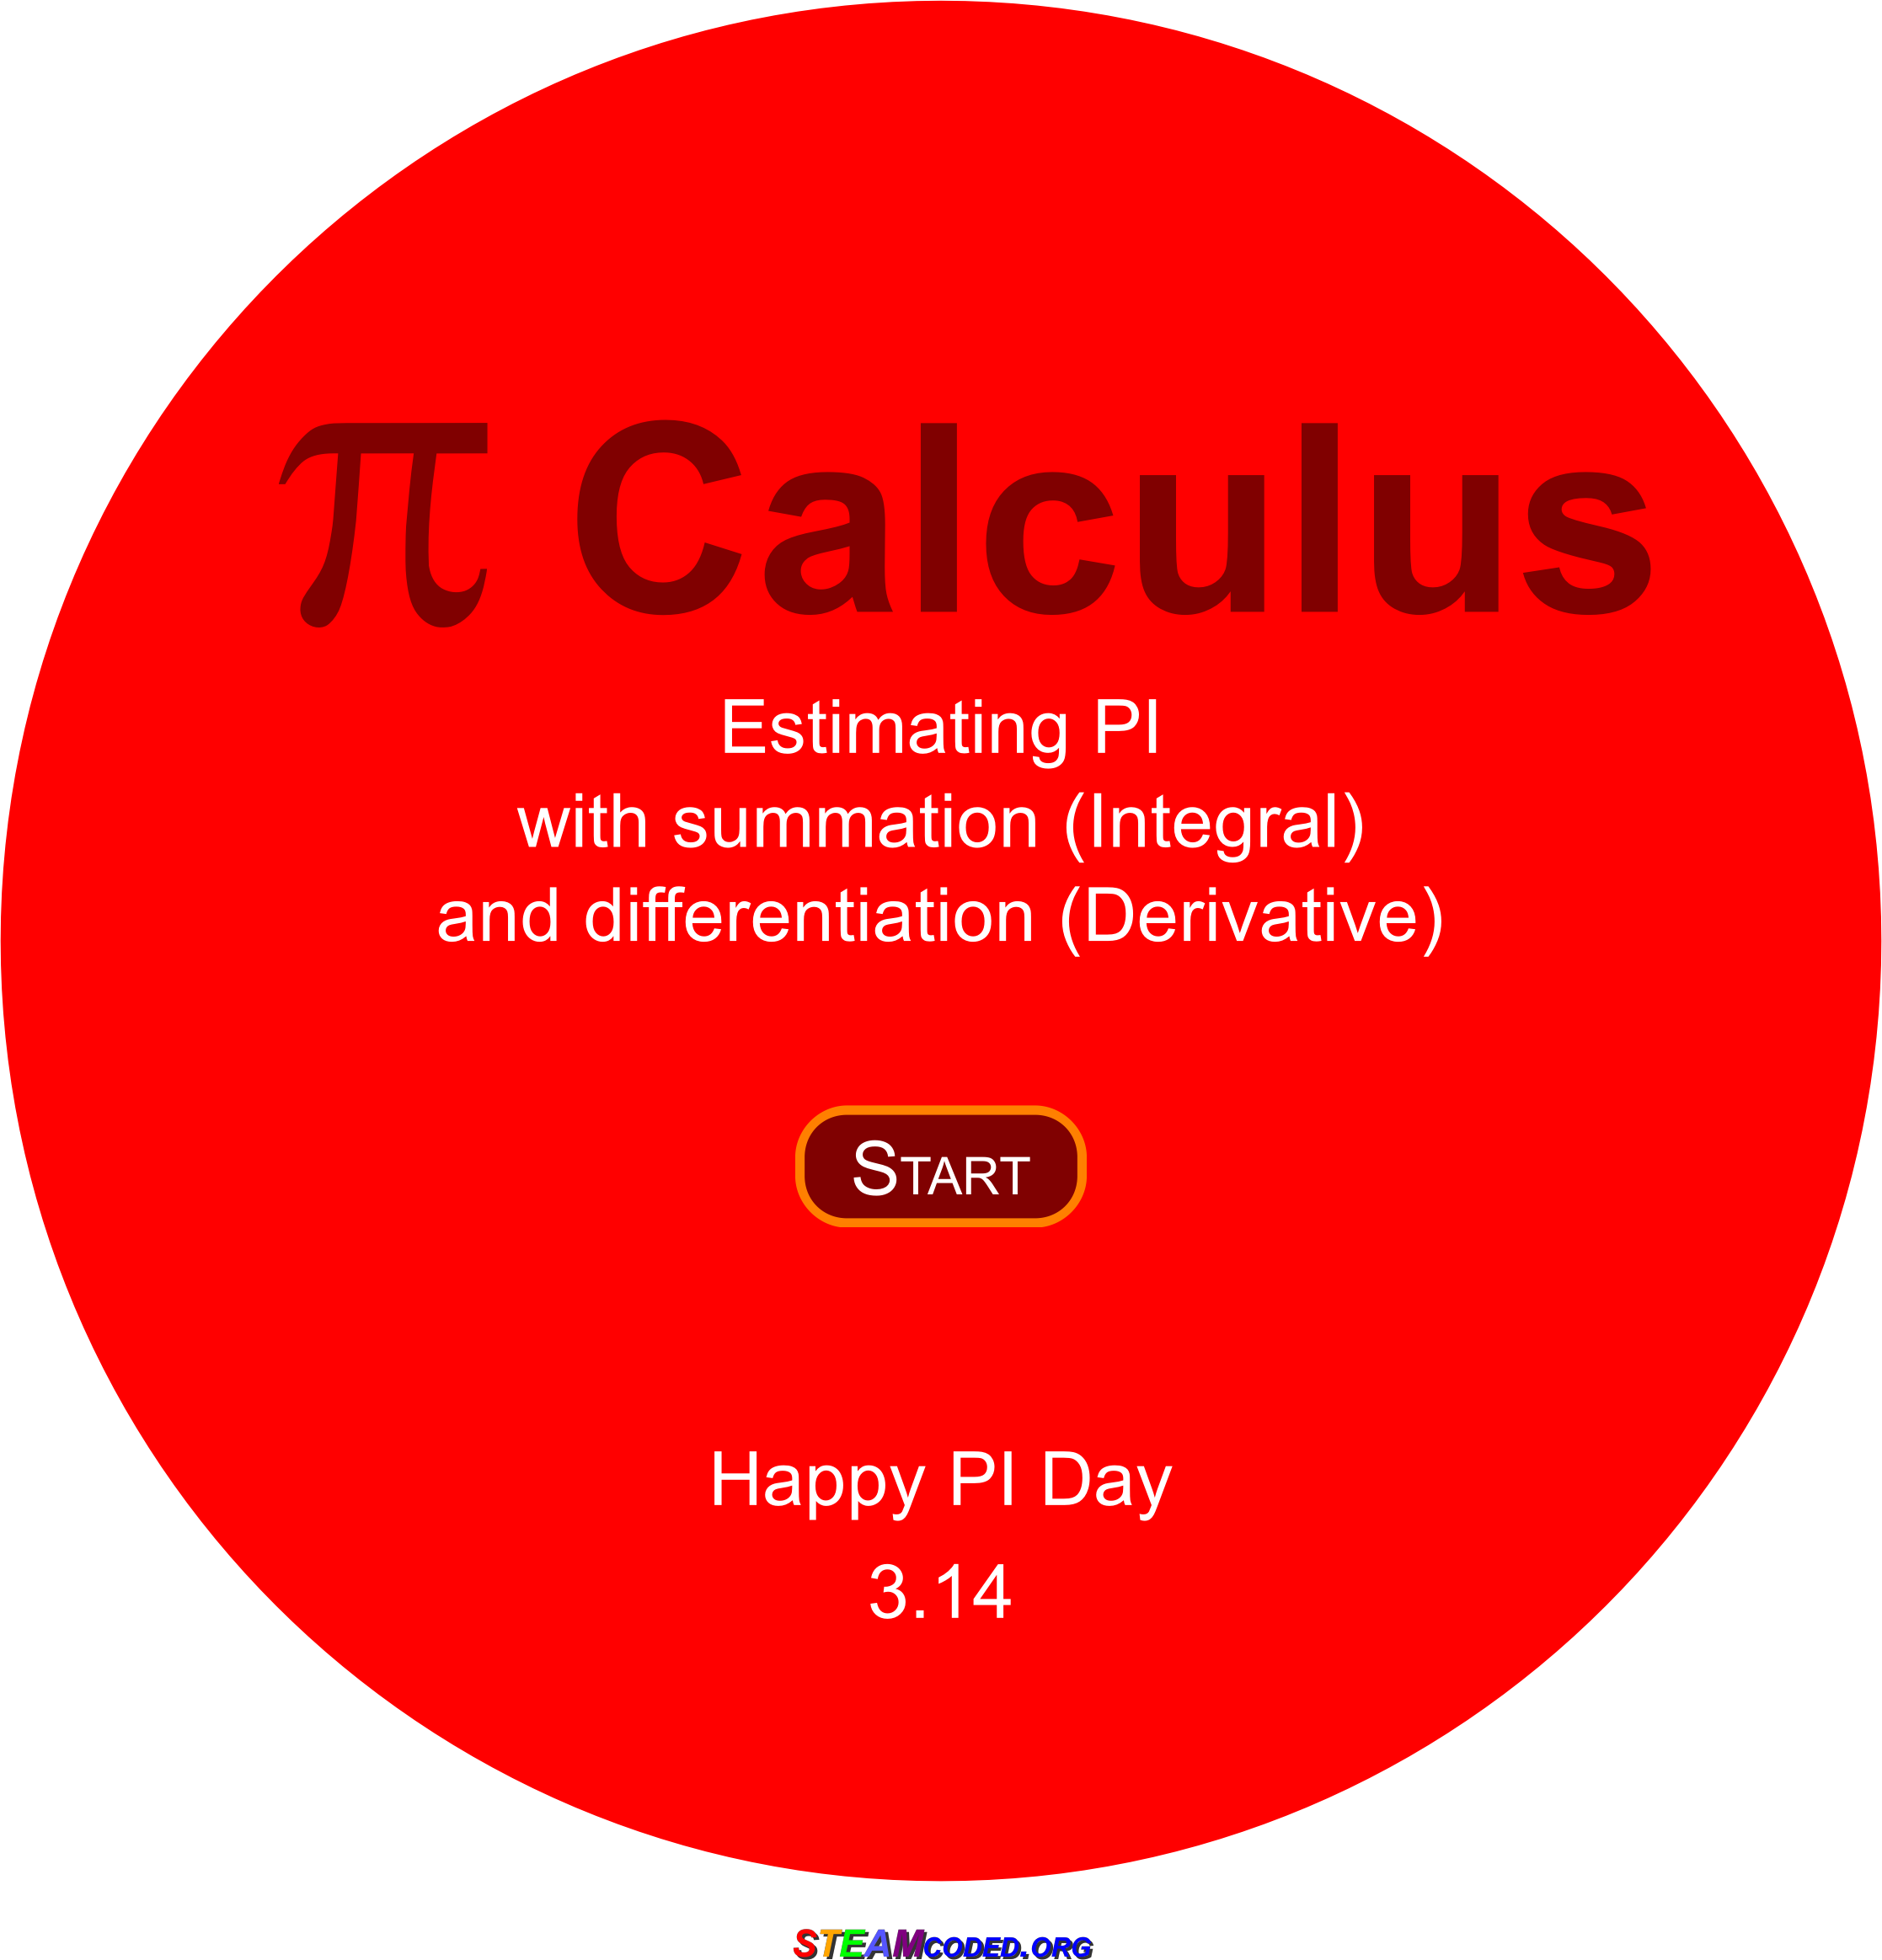 PI Calculus by JayNick